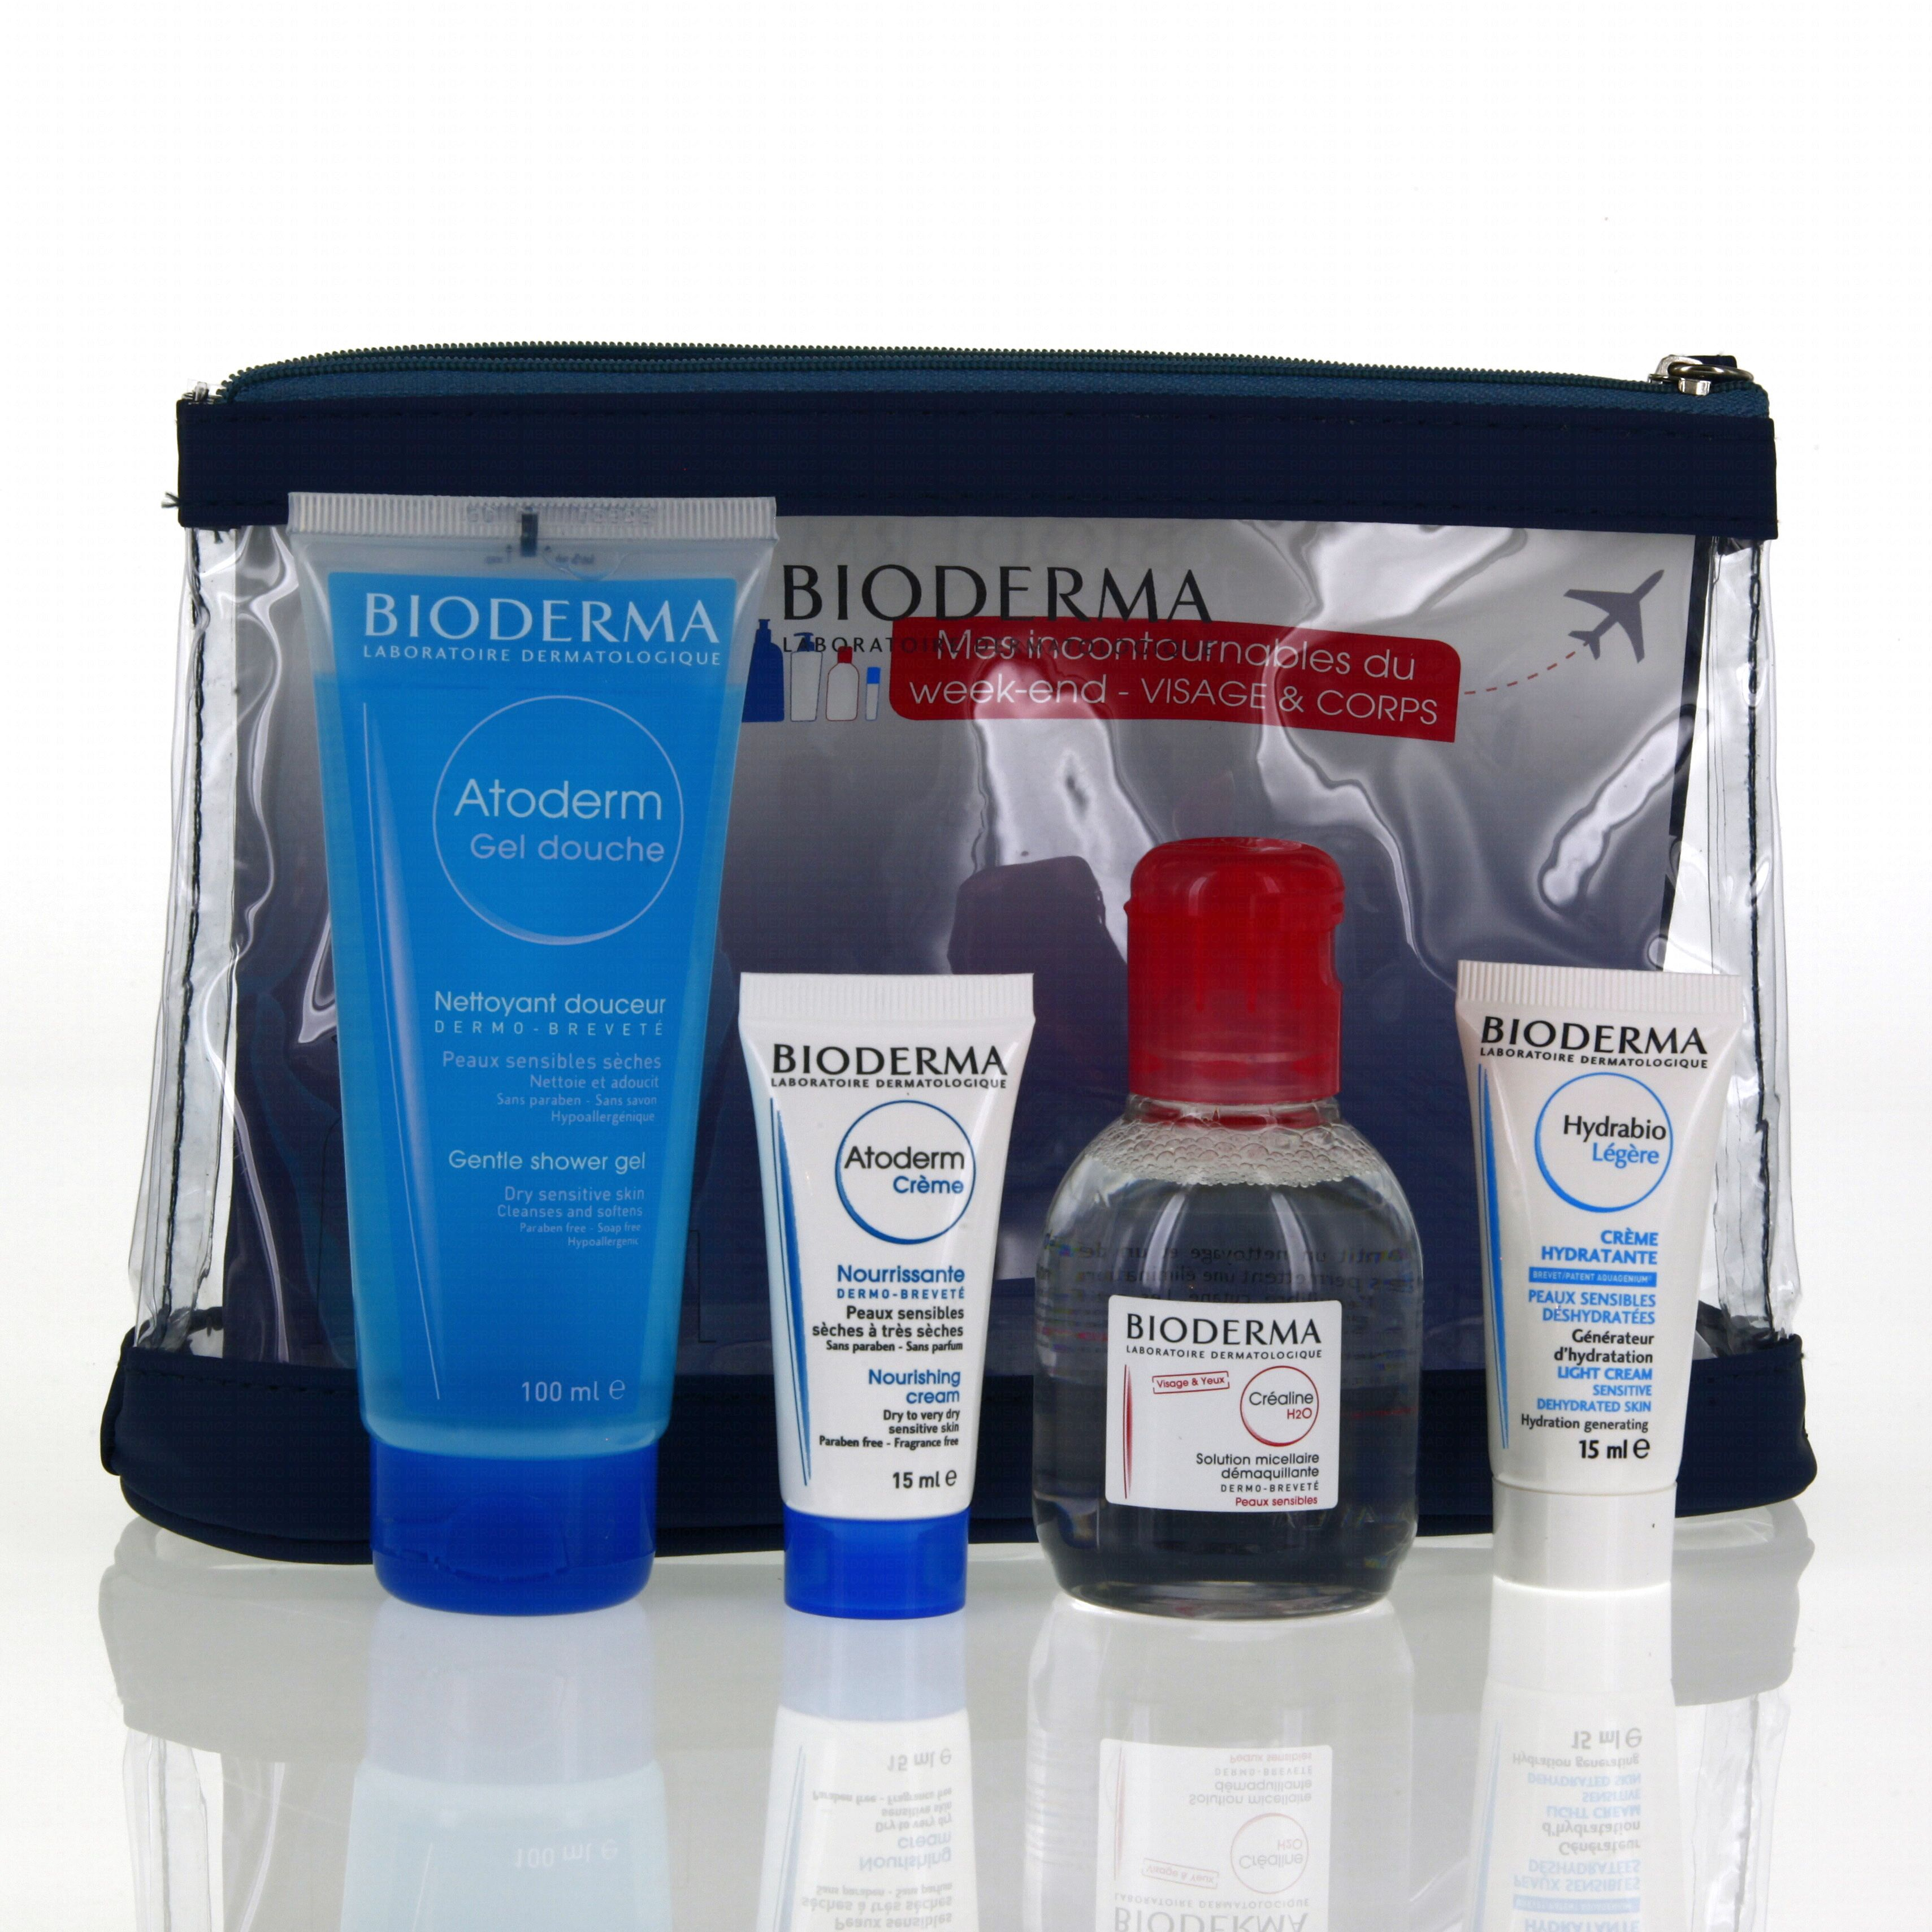 Request your Free Bioderma Sample Kit! Travel size